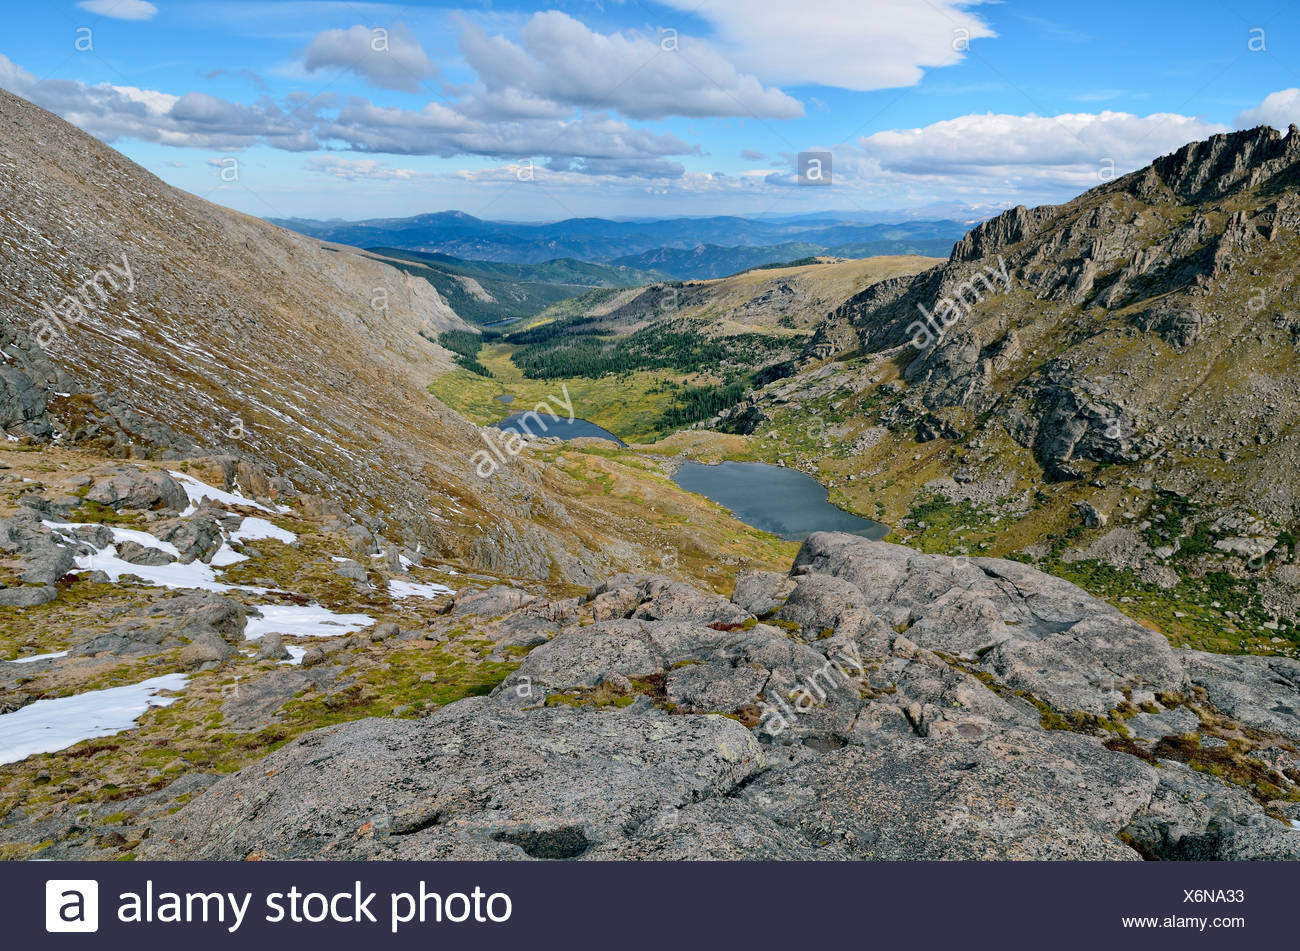 Chicago Lakes, Mount Evans Wilderness Arapaho National Forest, Idaho Springs, Colorado, USA - Stock Image